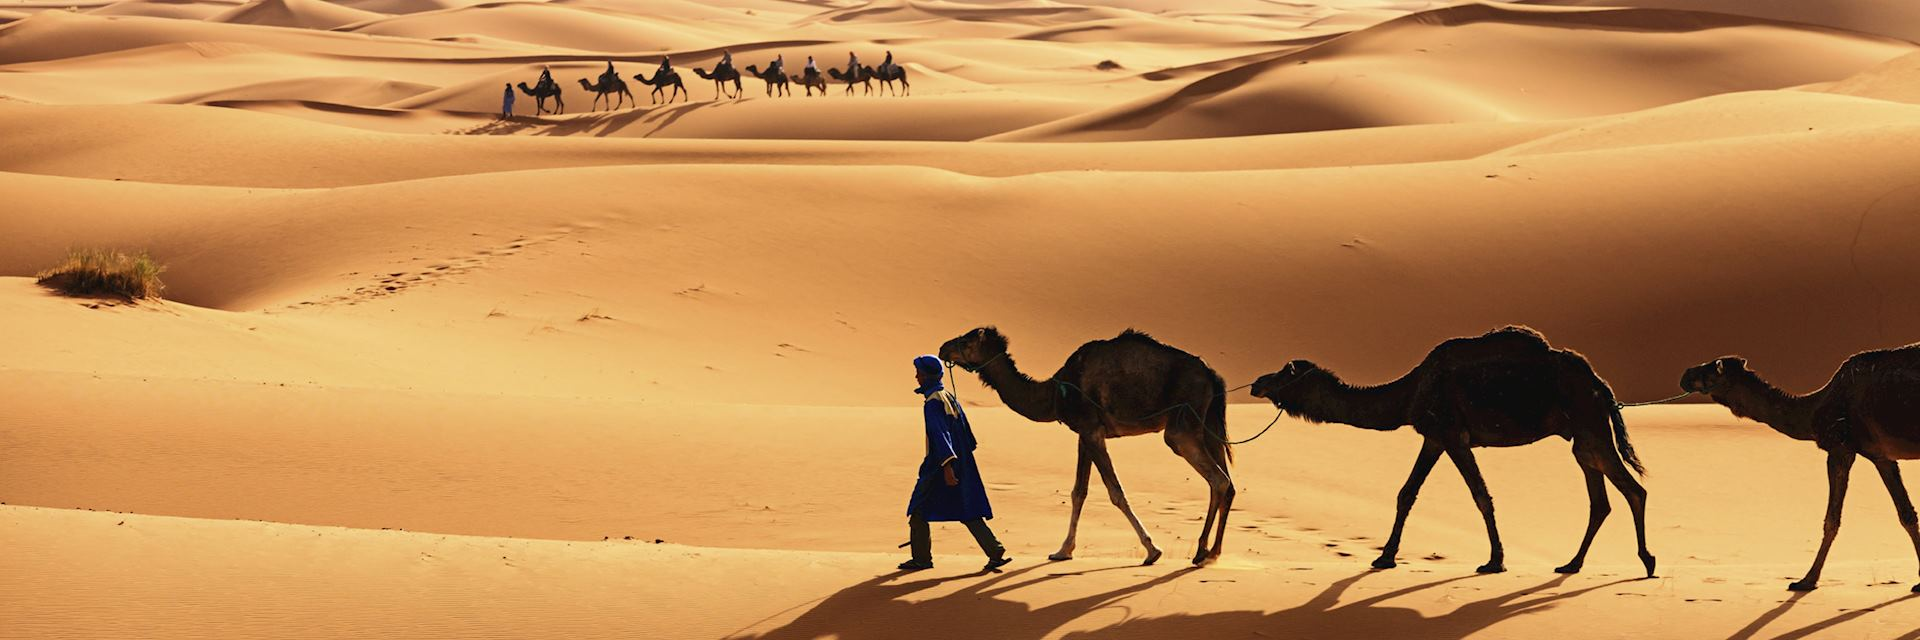 Tuareg camel train in the Western Sahara Desert